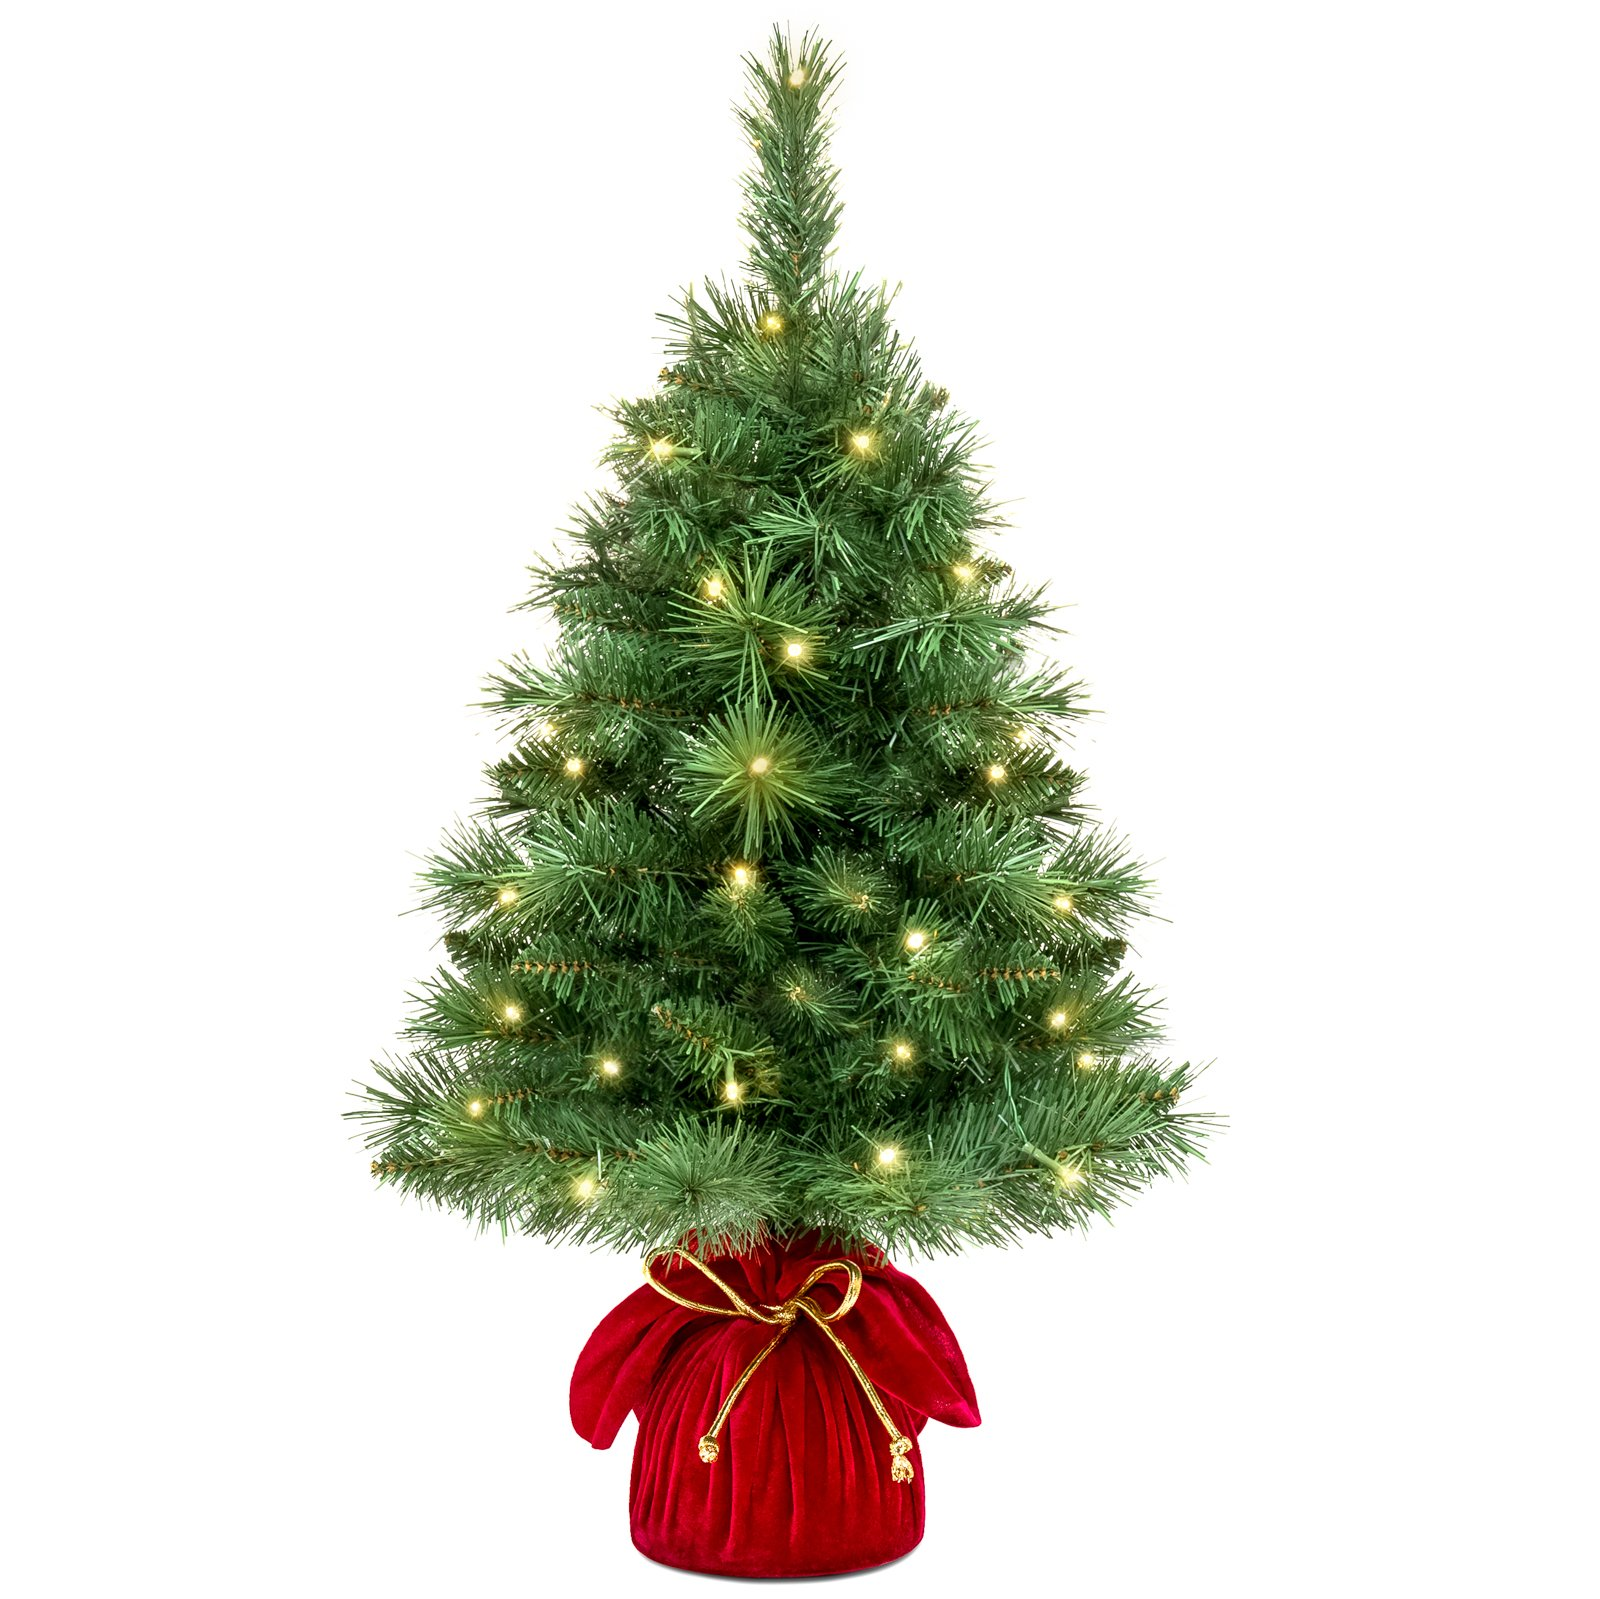 Best Choice Products 26in Pre-Lit Tabletop Fir Artifical Christmas Tree Decor w/ 35 LED Lights, Extra Bulbs - Green